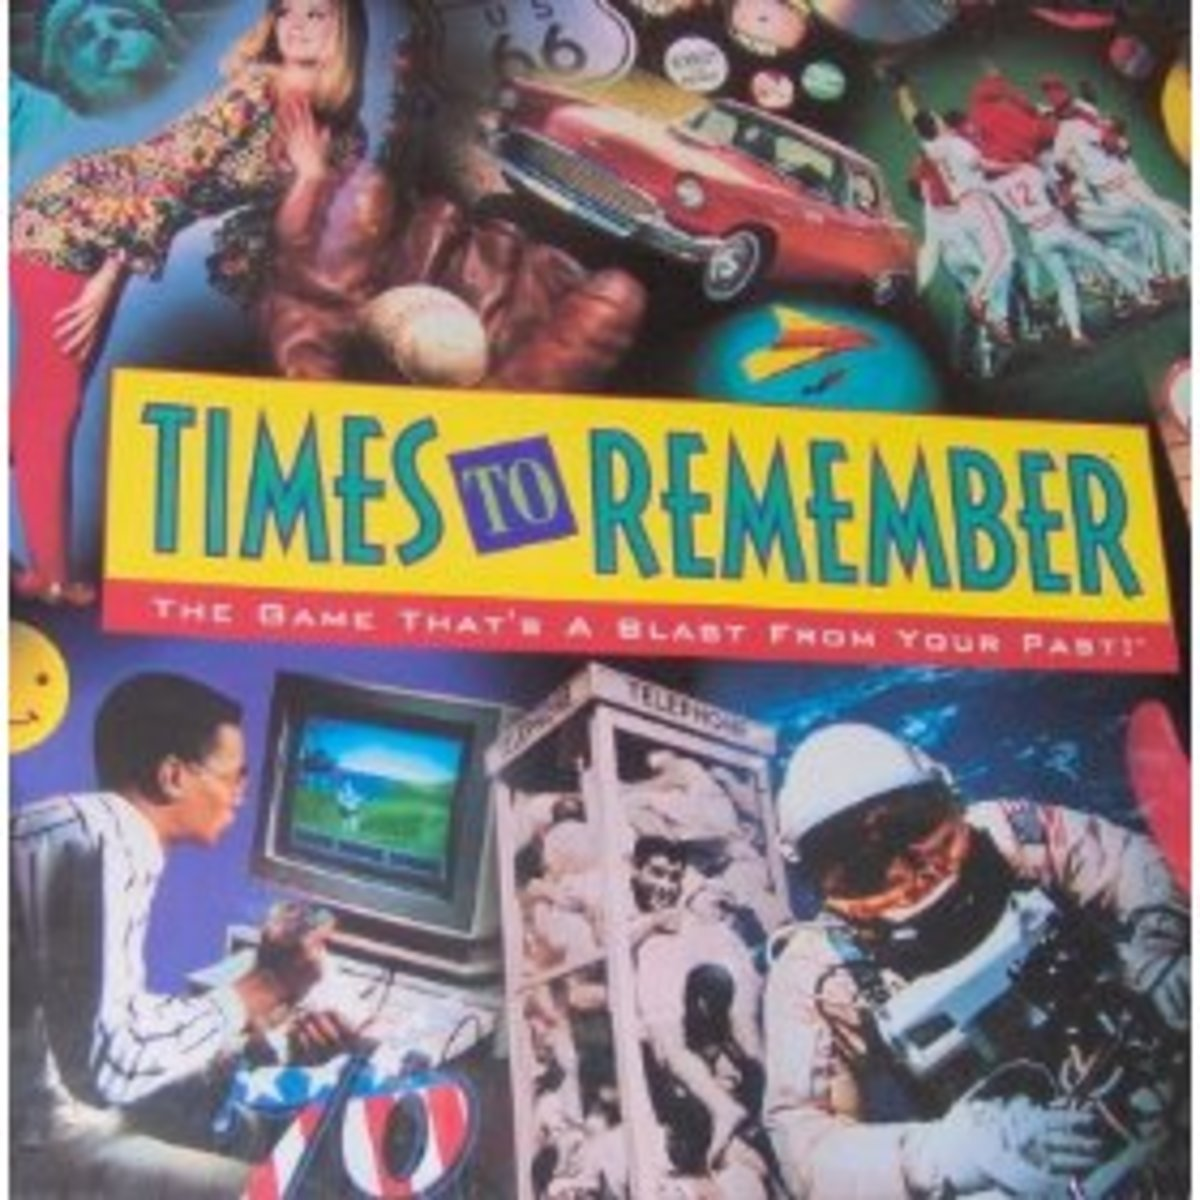 Times to Remember-An Awesome Game Everyone Should Own!